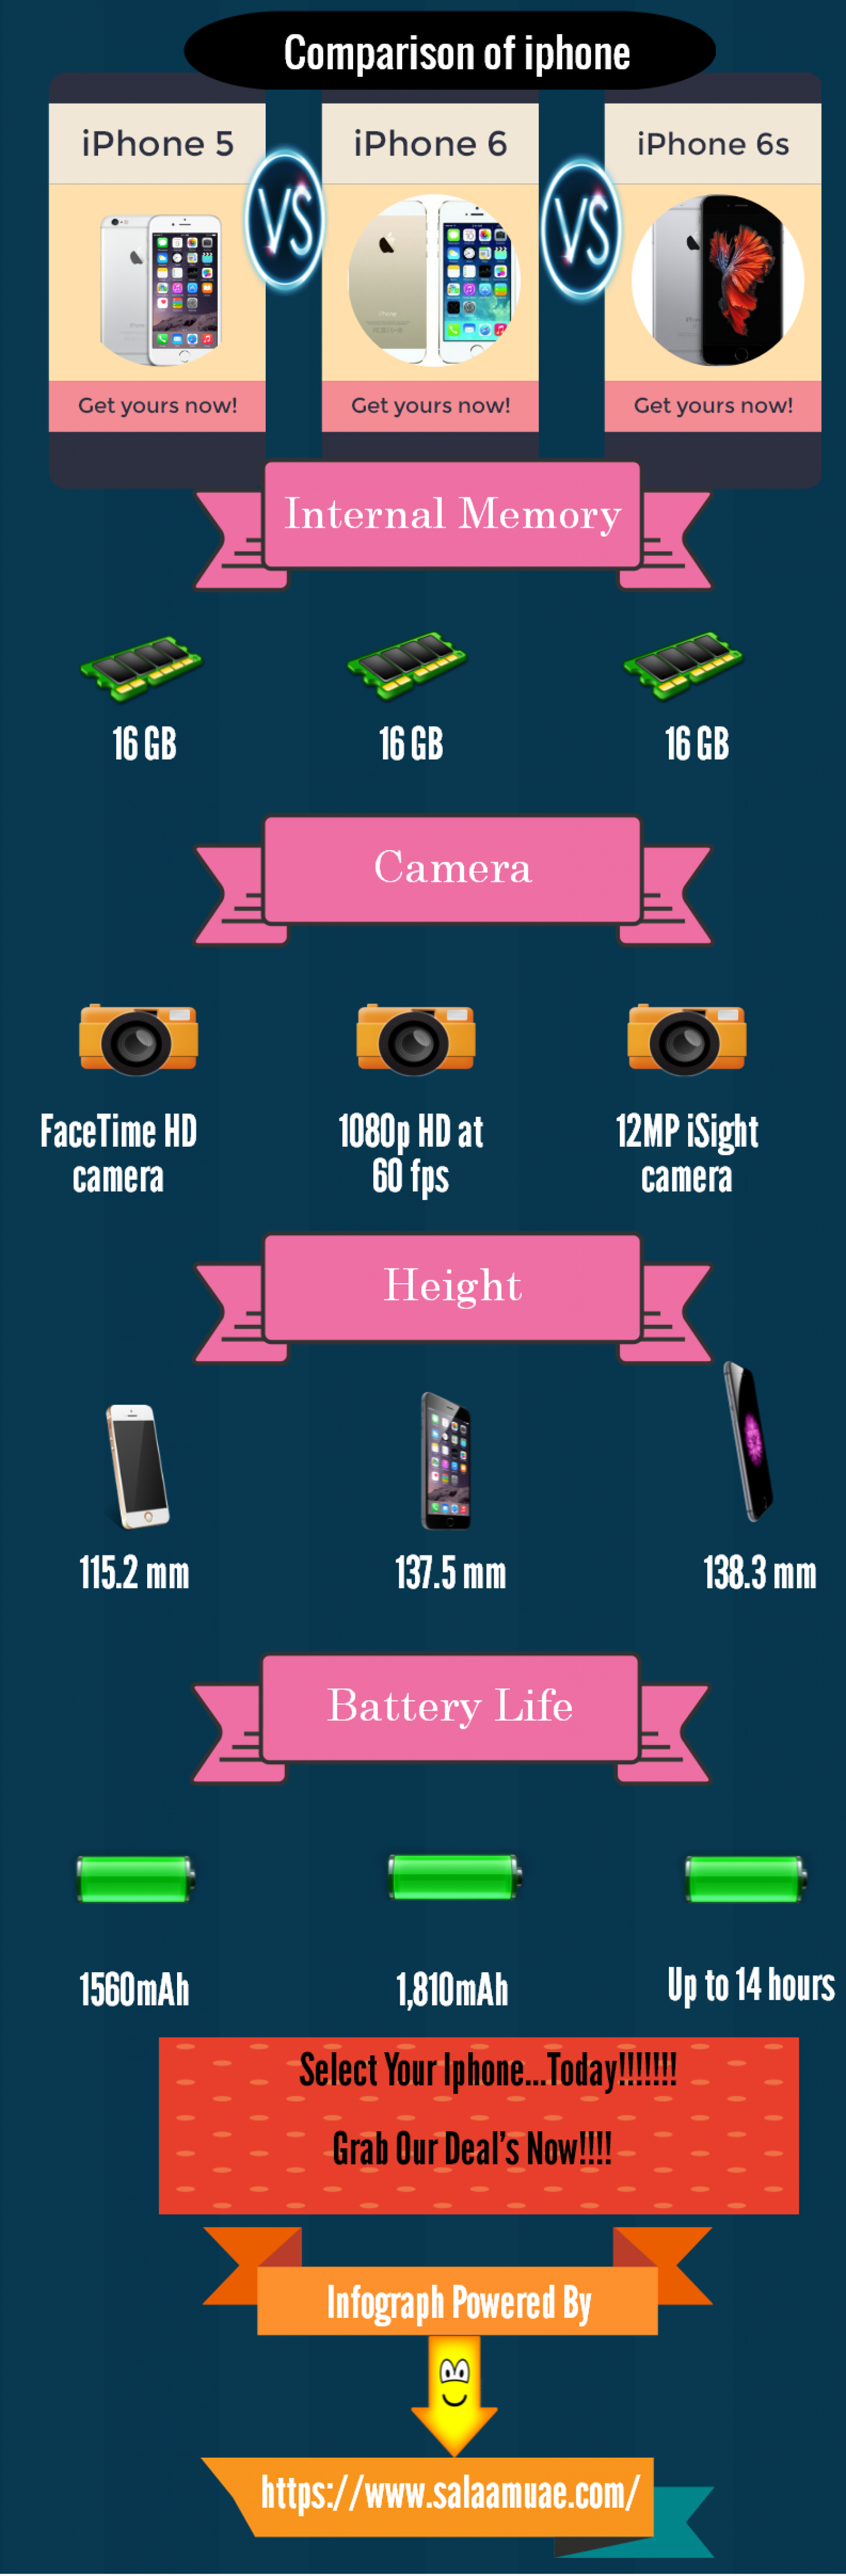 Comparison of iPhones Infographic